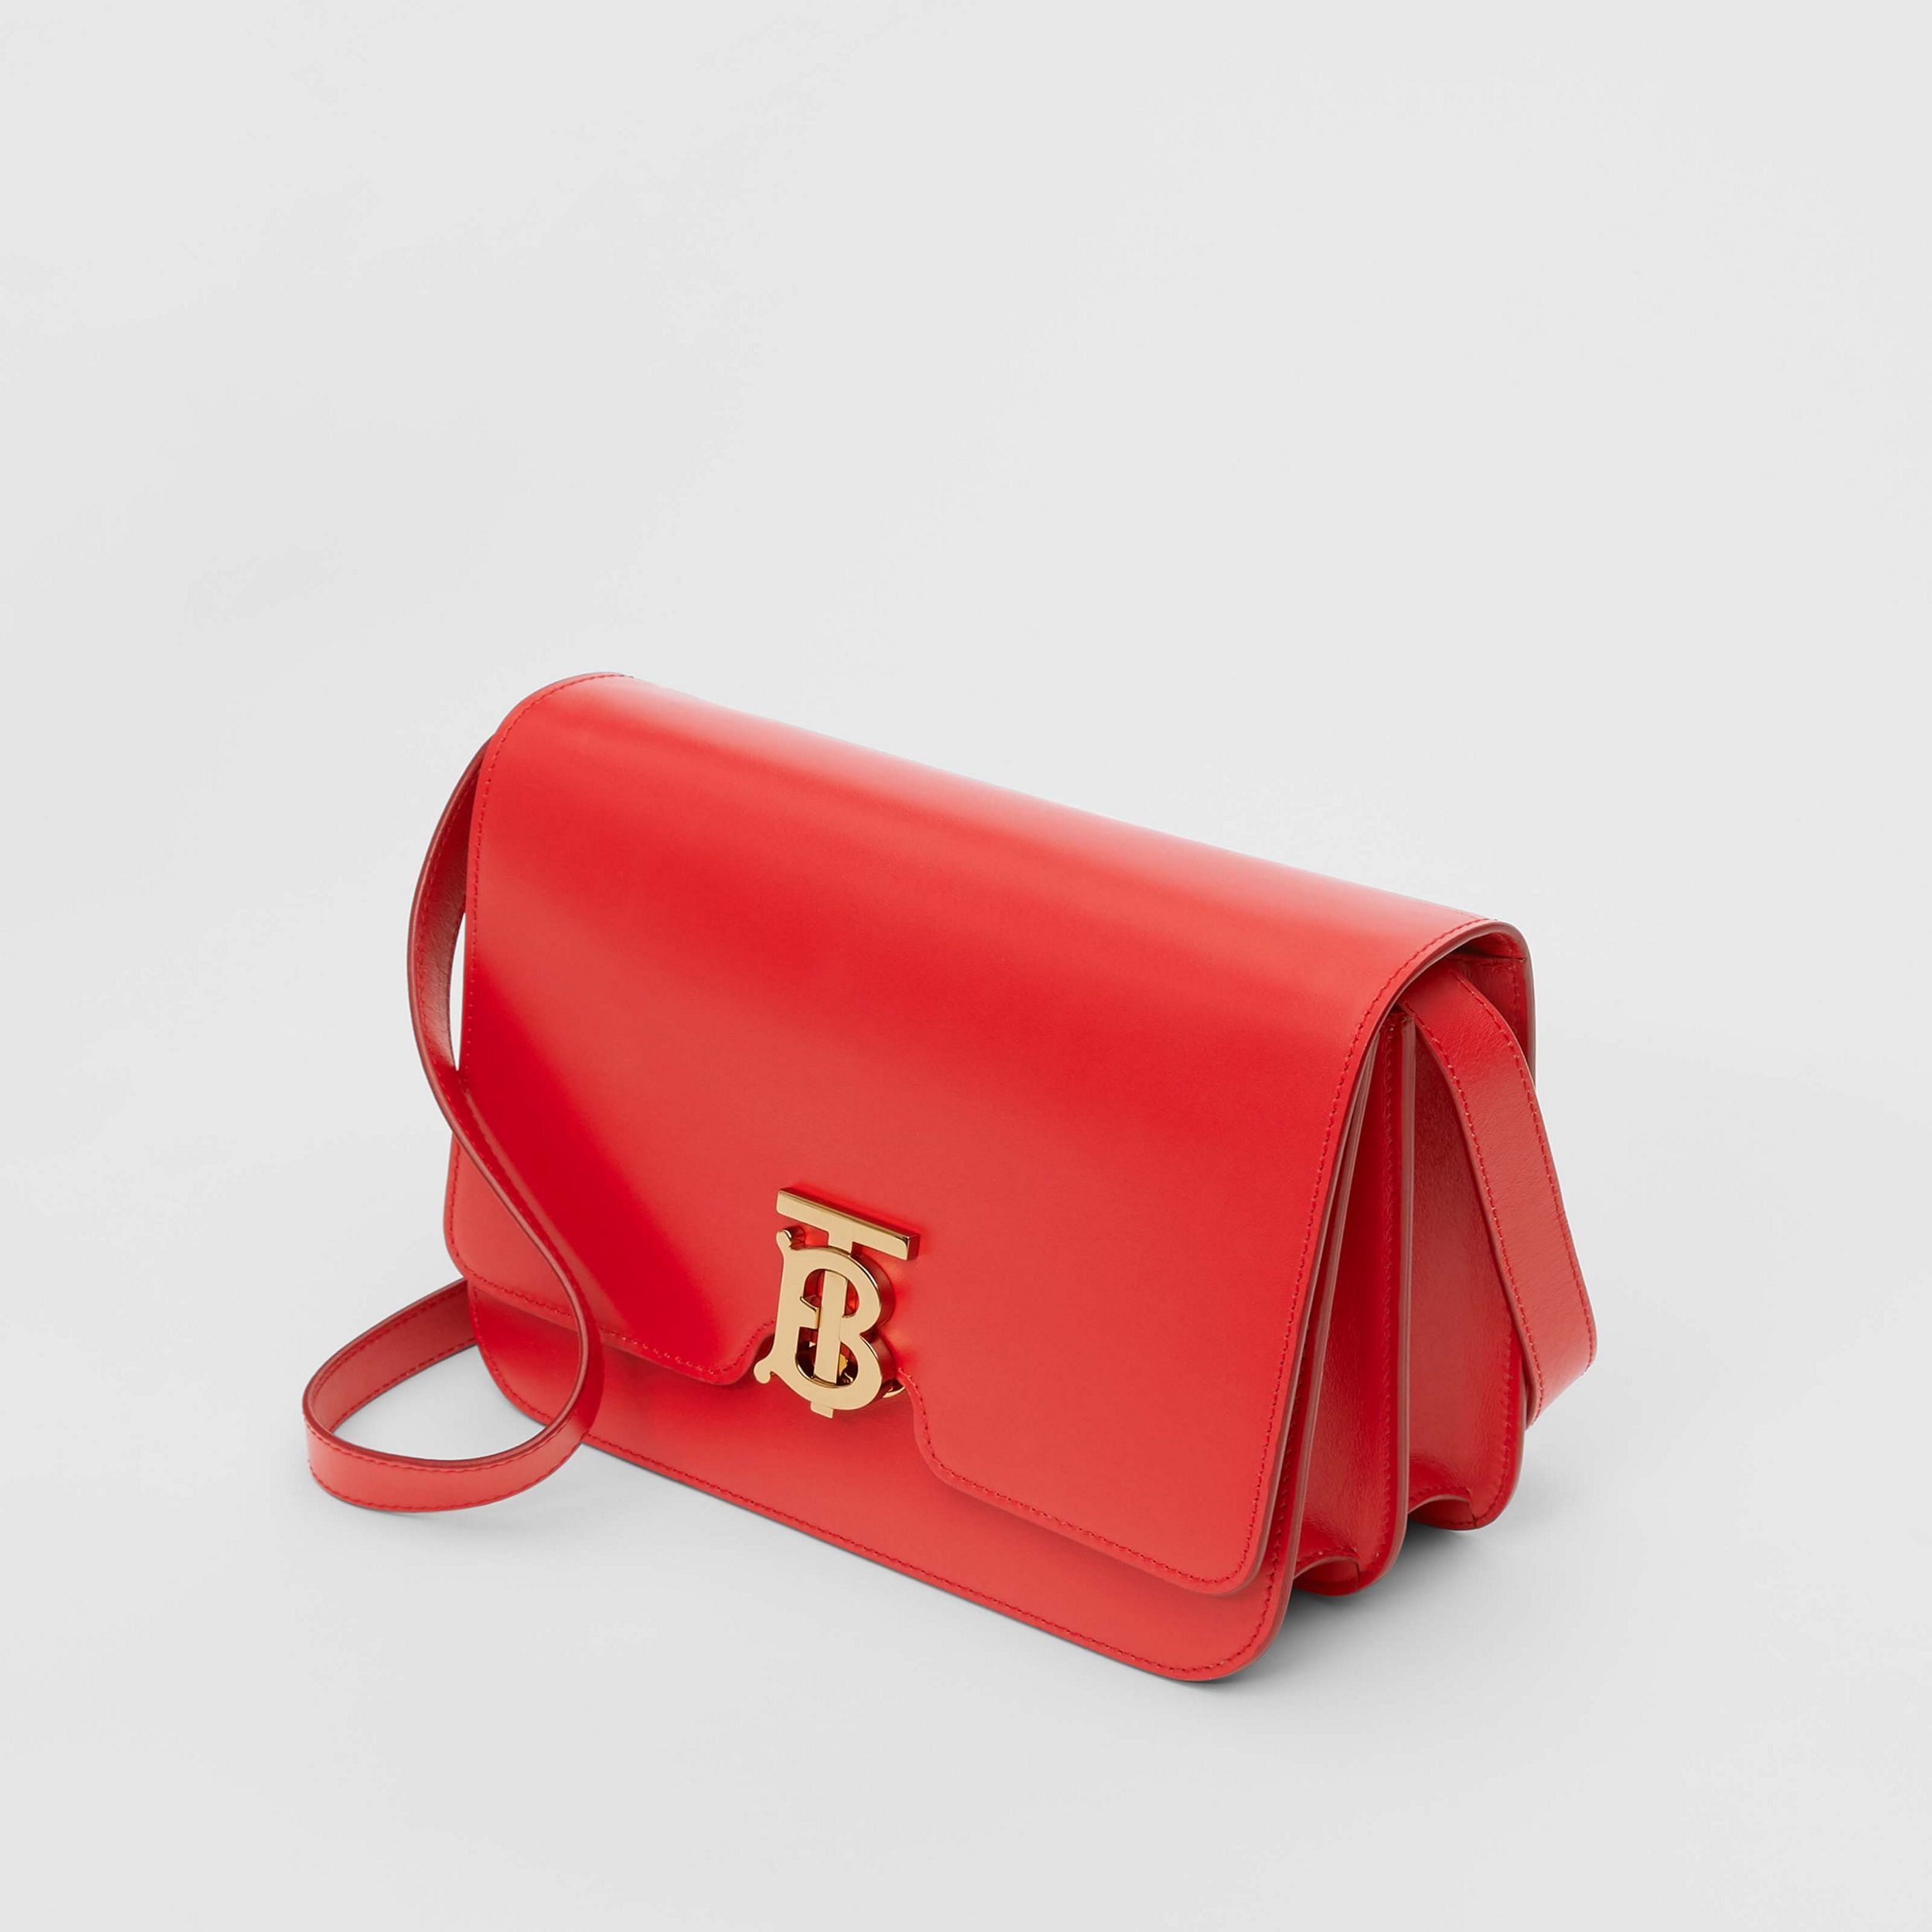 Medium Leather TB Bag in Bright Red - Women | Burberry - 4